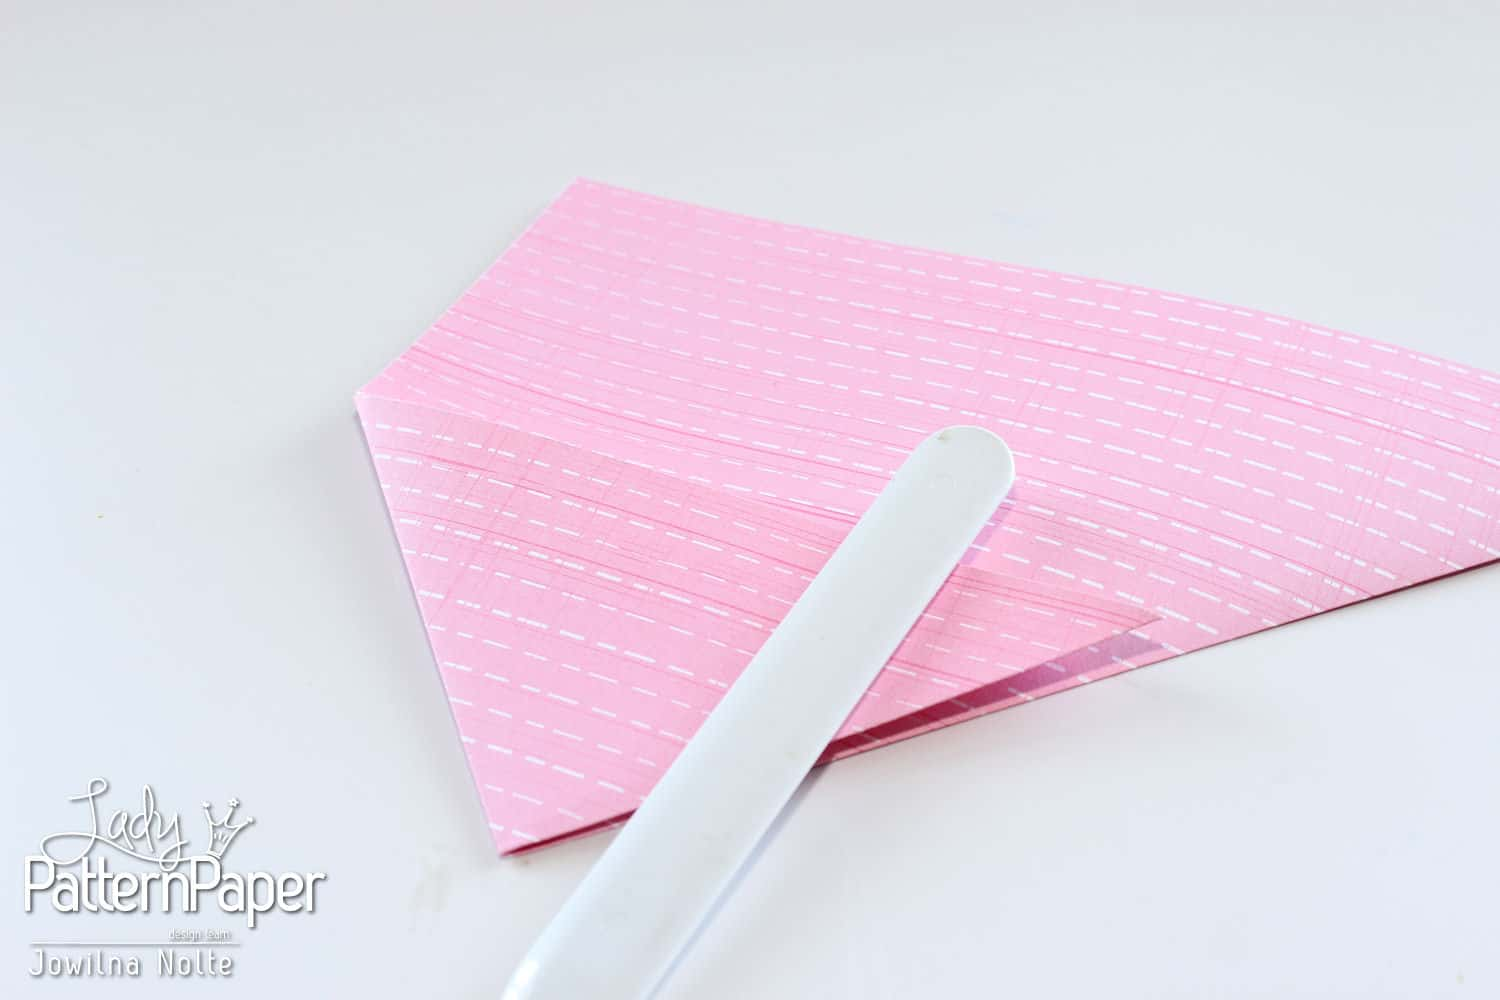 Pocket Envelopes - Step 2